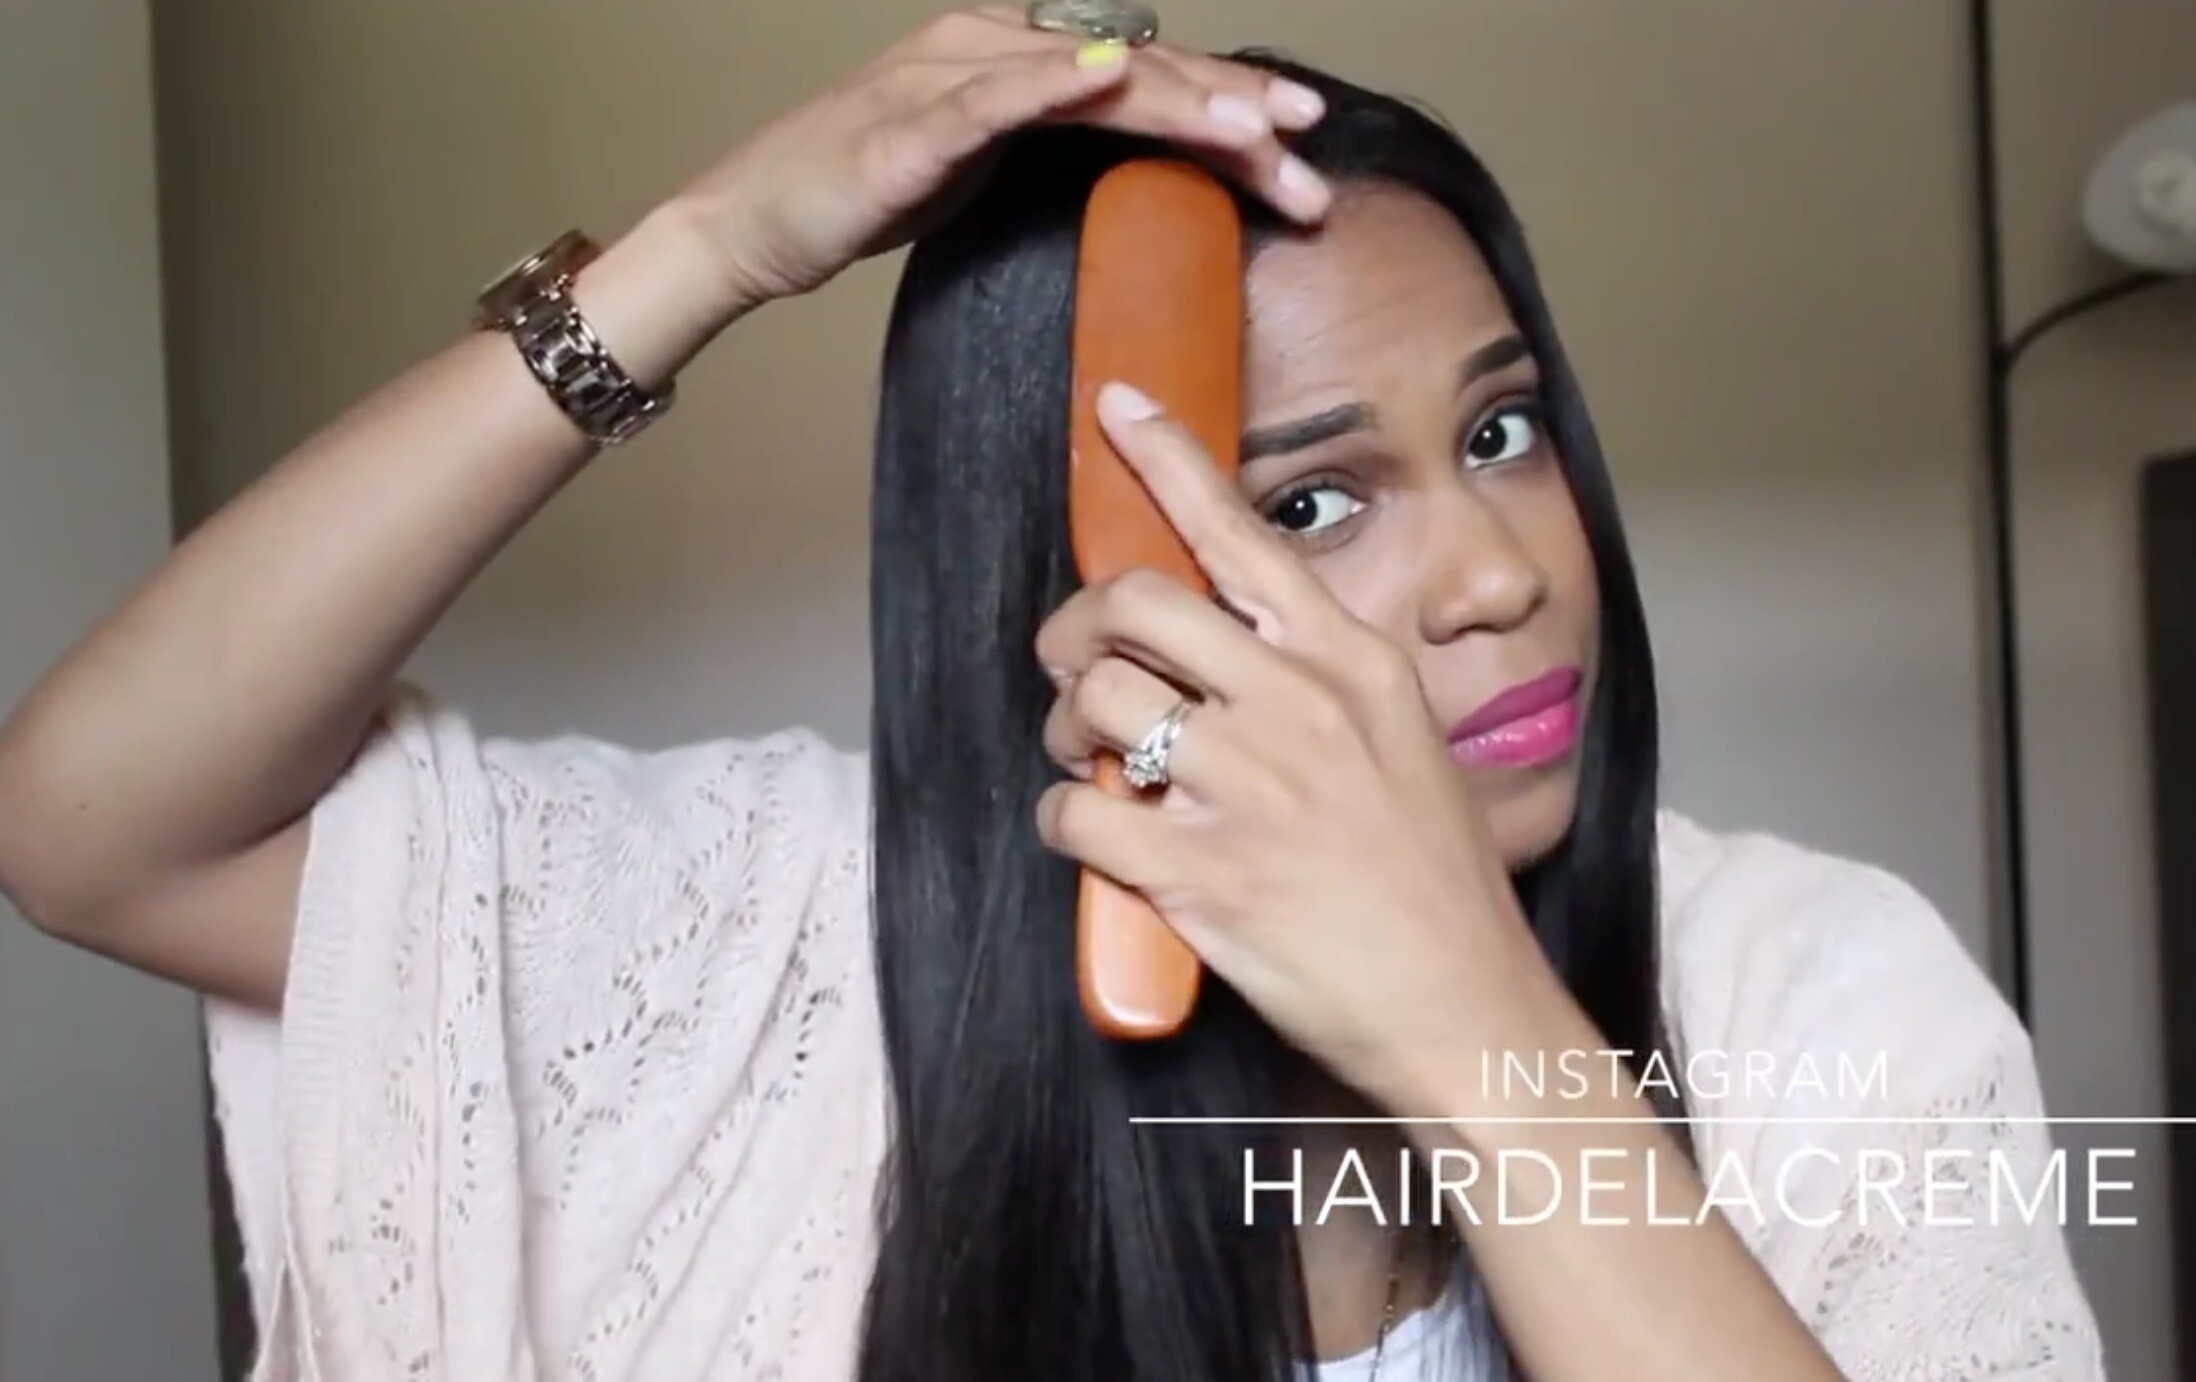 comb to blend your own hair to the wig